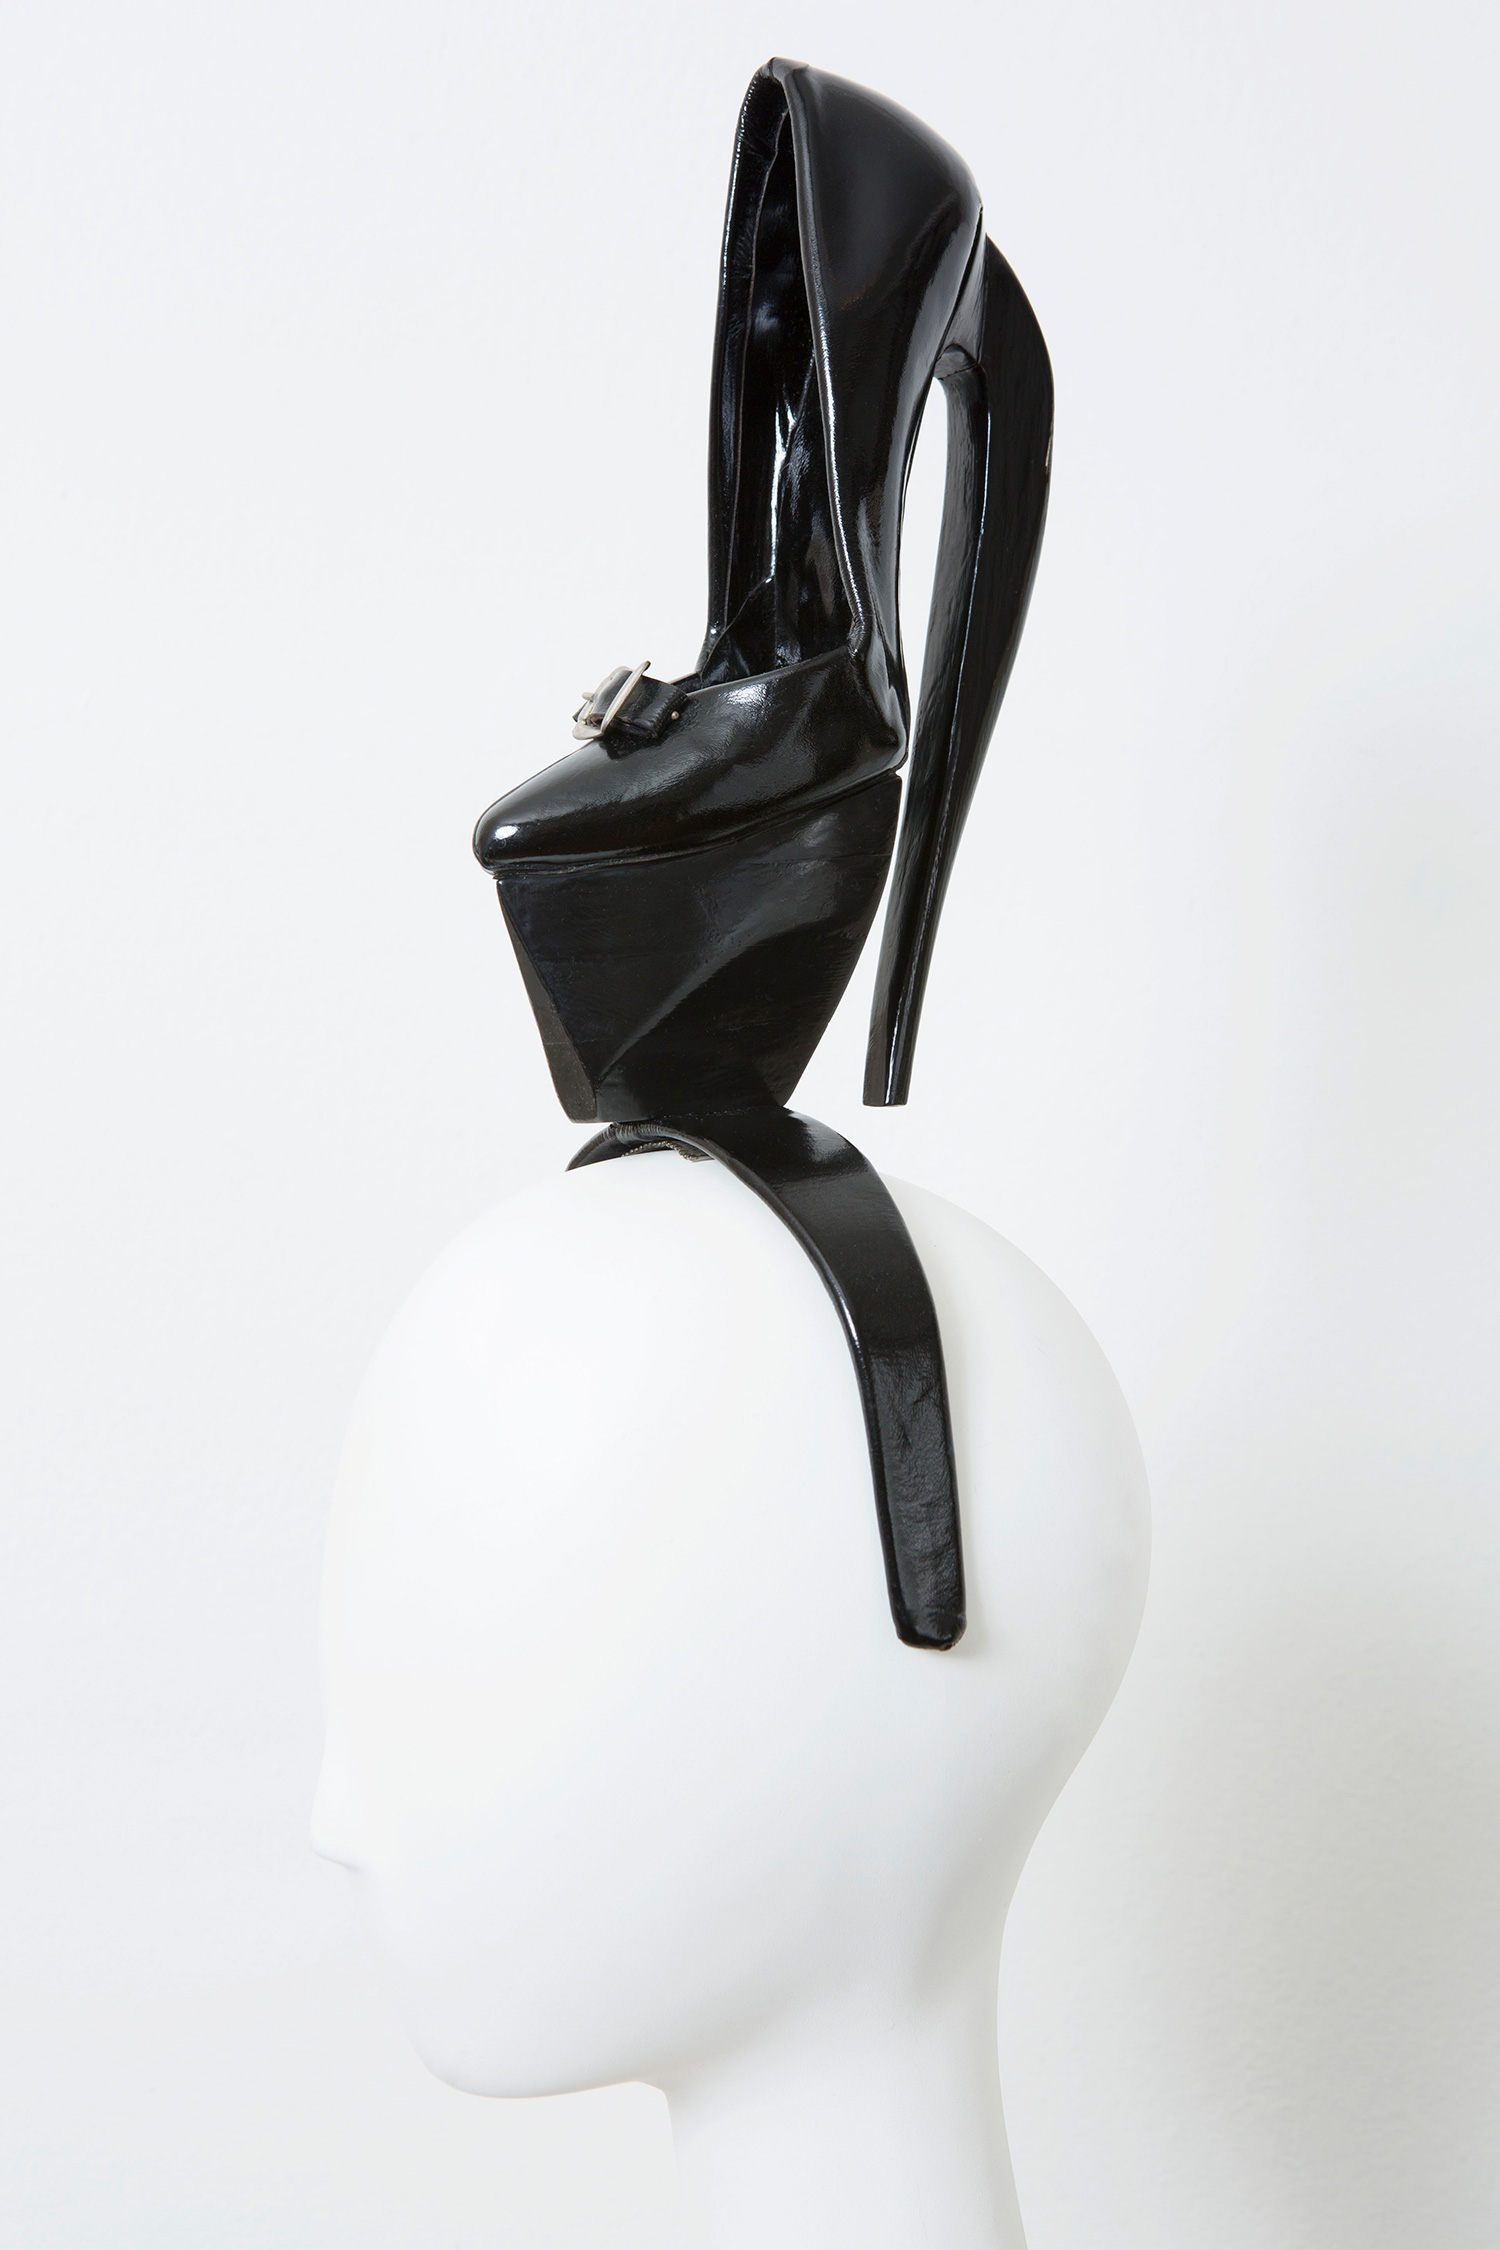 Shoe Headdress, 1990